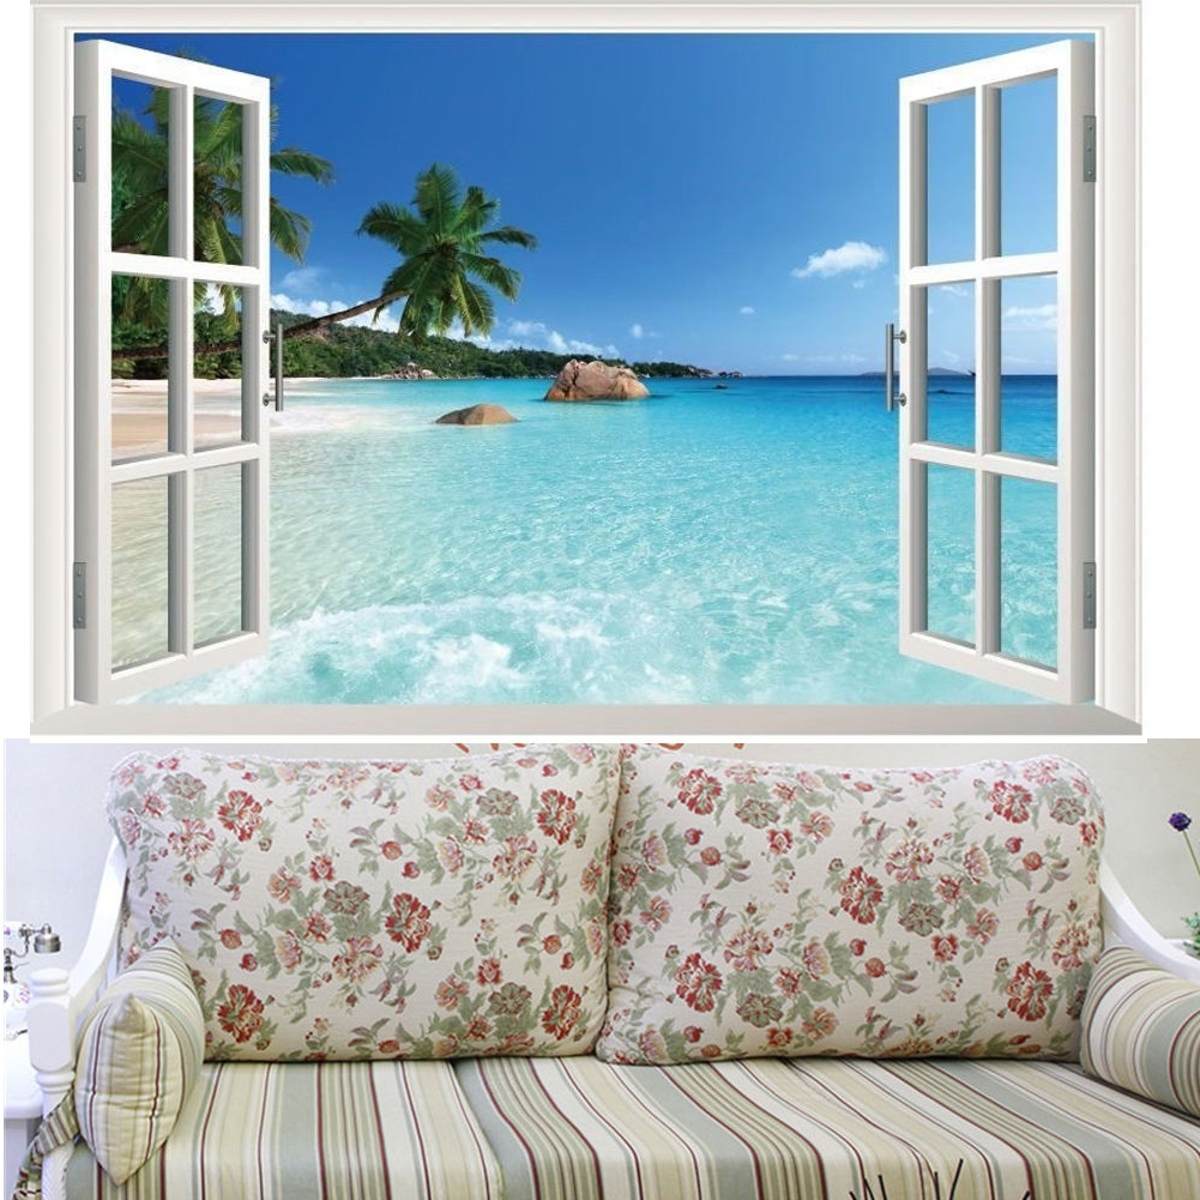 Best And Newest Beach Window View Scenery 3d Wall Stickers Vinyl Art Mural Decal For Beach 3d Wall Art (View 10 of 15)